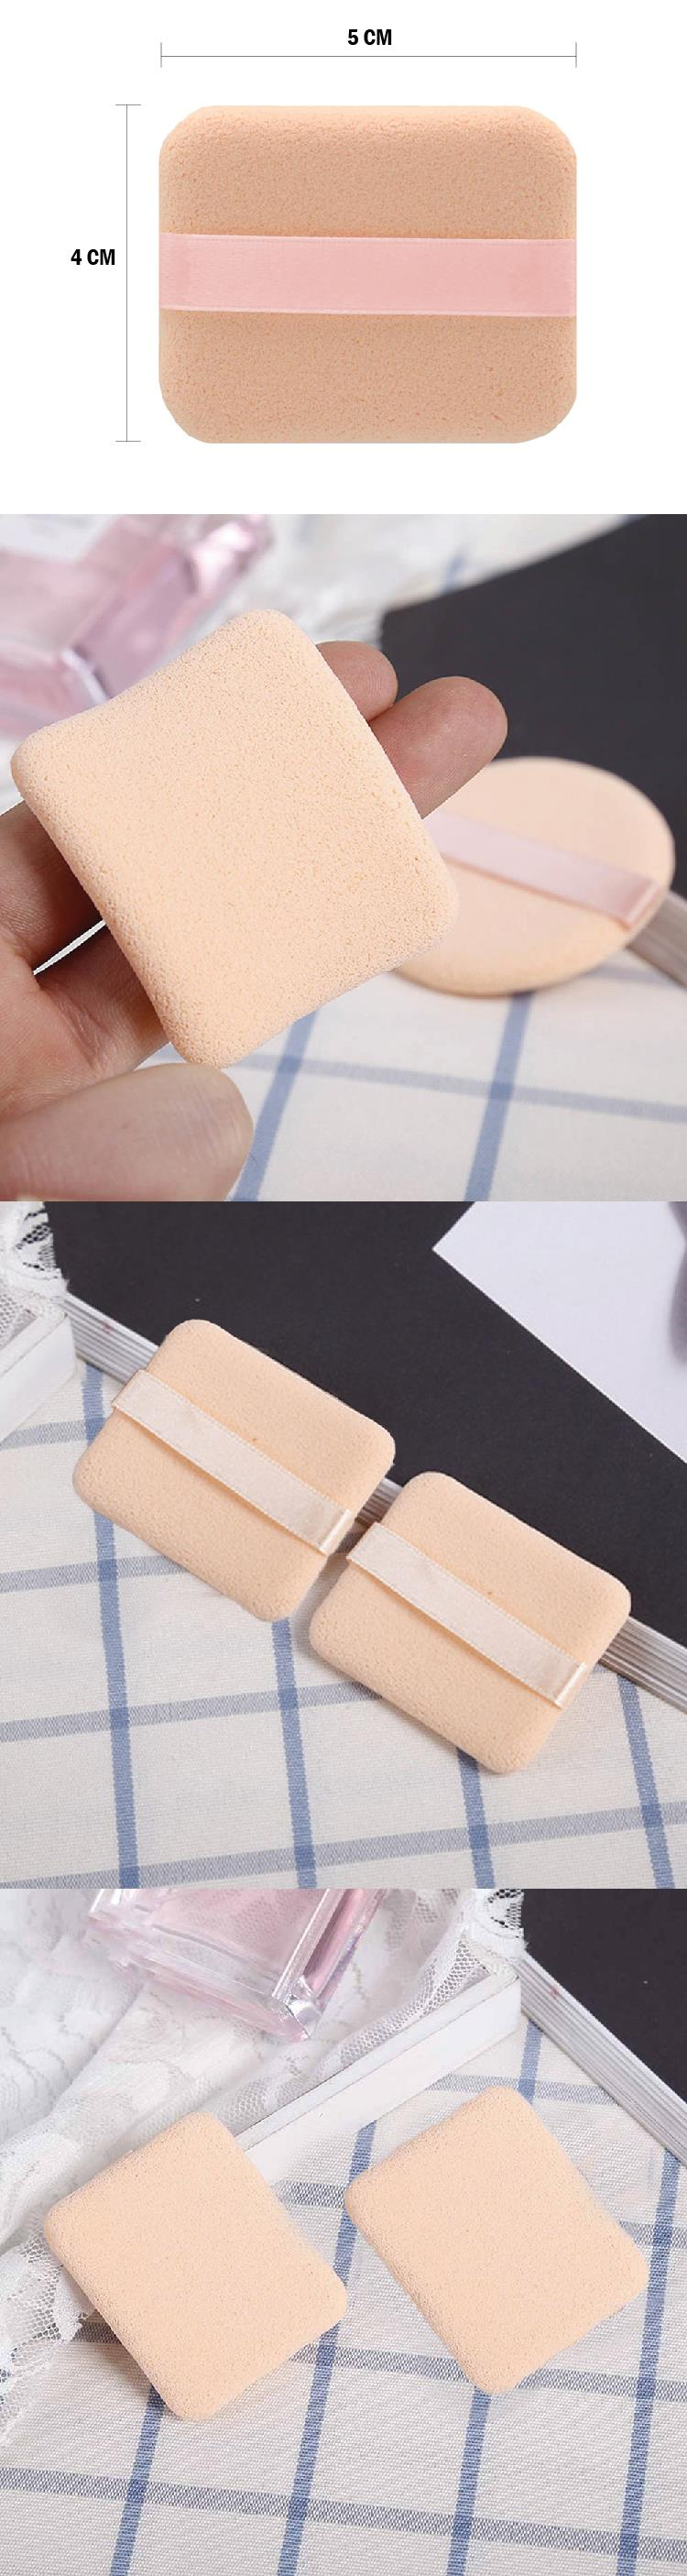 2pcs Make Up Square Soft Sponge Powder Puff Cosmetic Facial Beauty